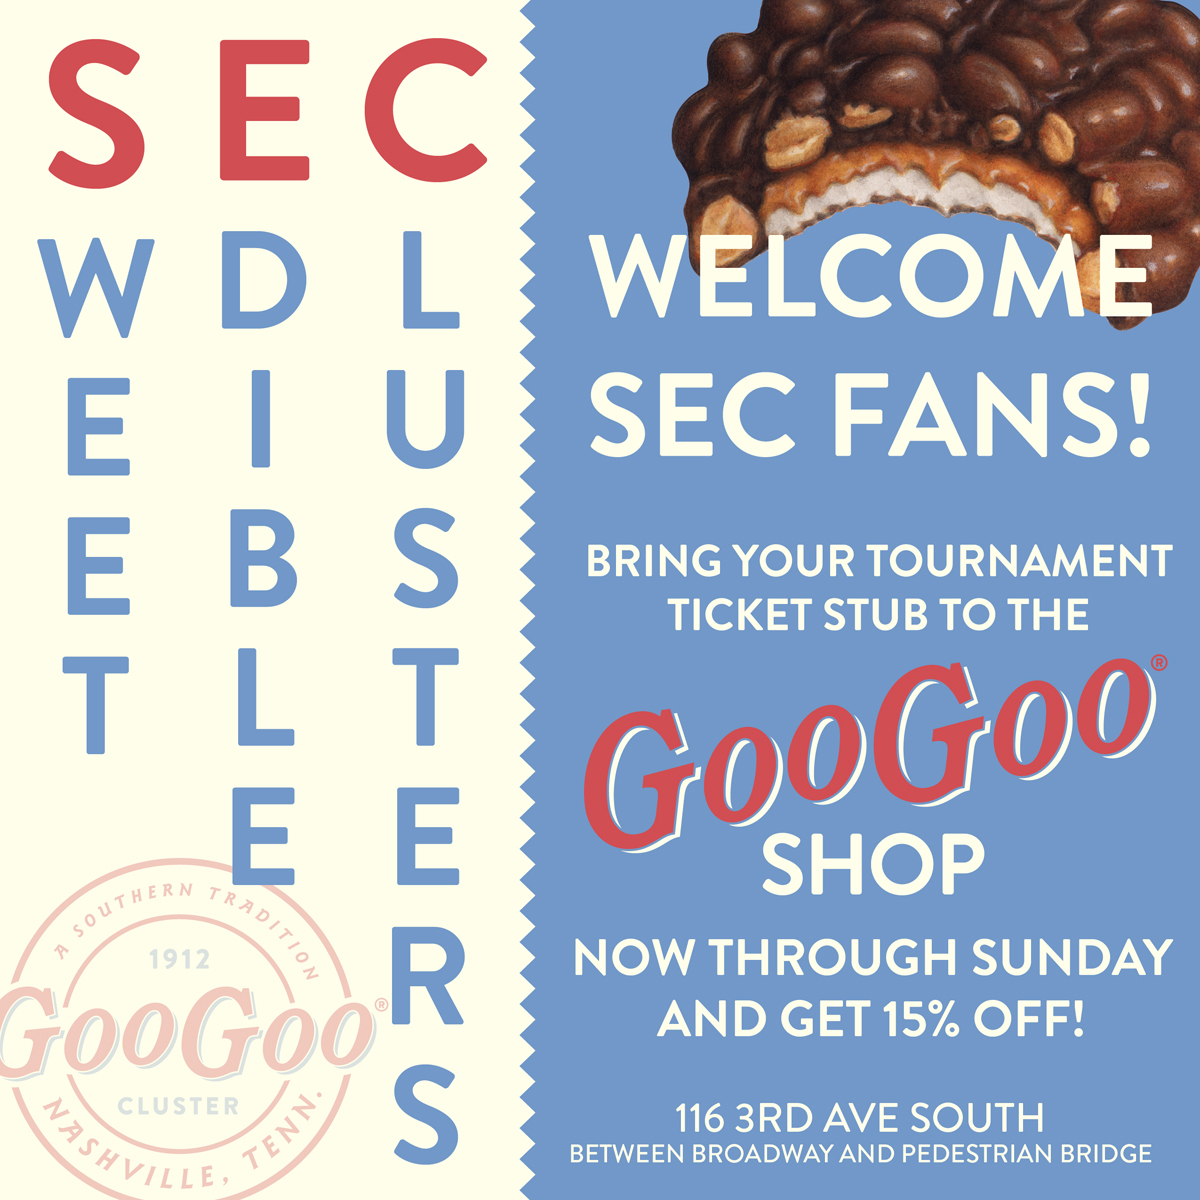 The Goo Goo Shop Welcomes SEC Tournament Fans to Nashville! Image